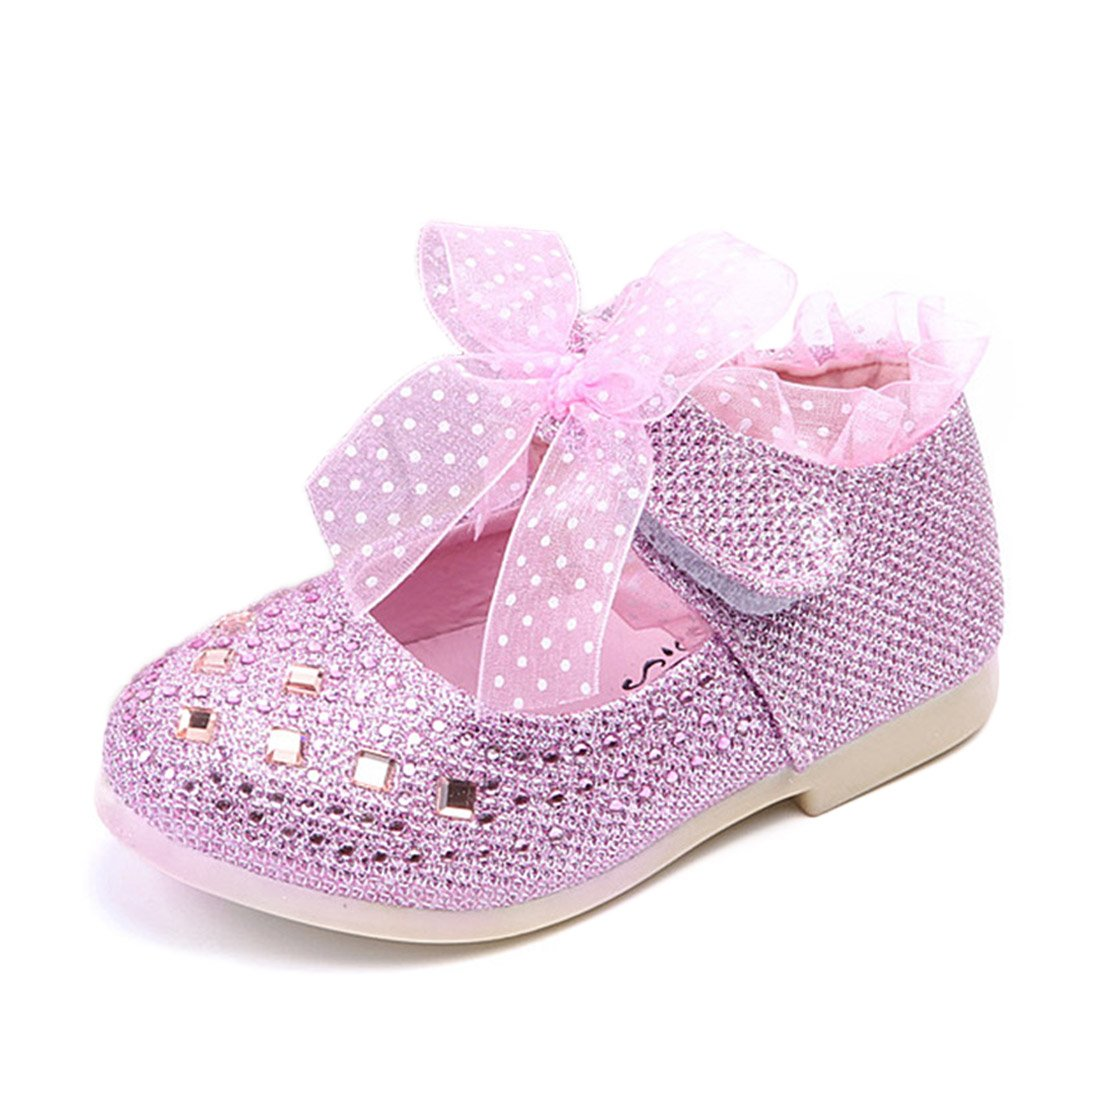 O&N Toddler Baby Girls Infant Princess Wedding Party Dress Shoes Ballet Flats Mary Janes